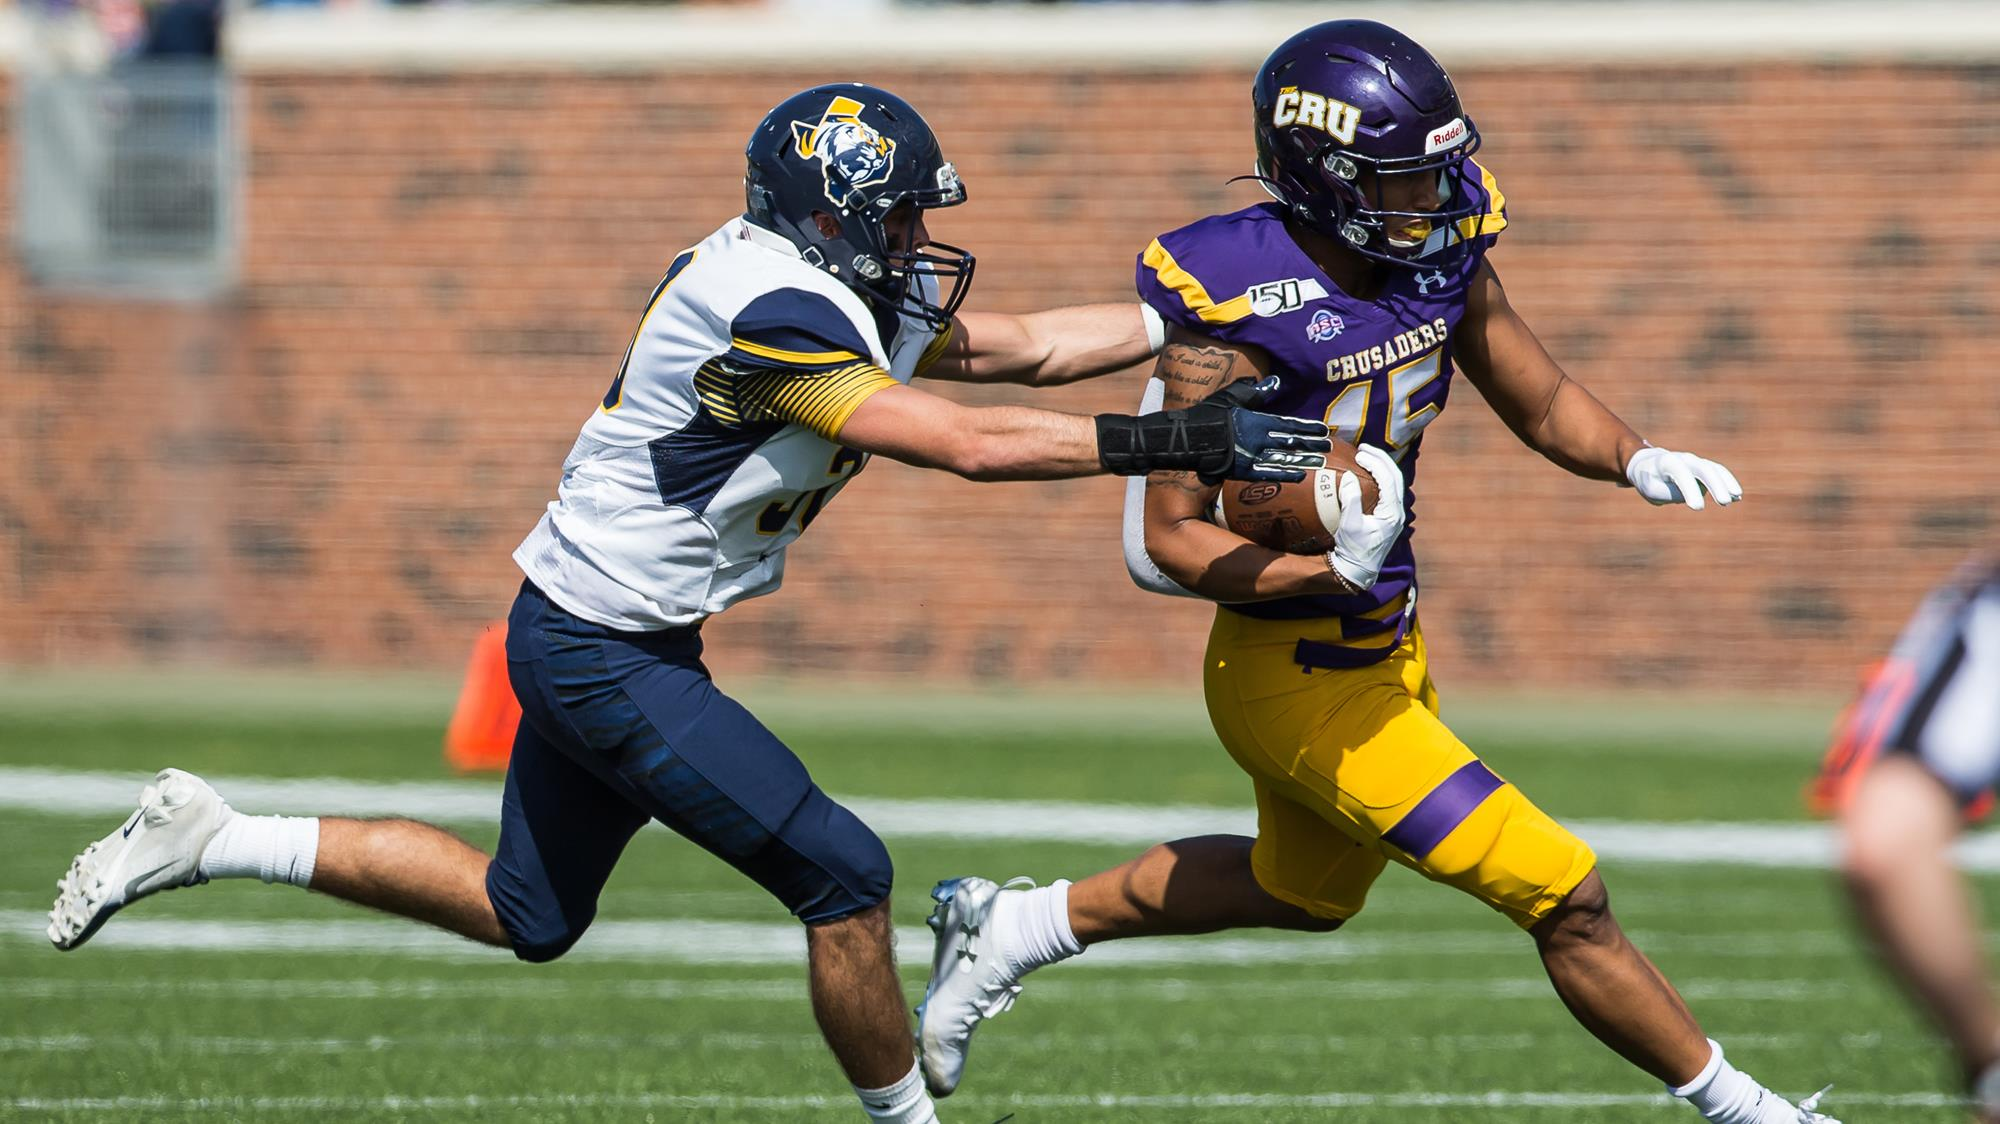 Jonel Reed Football University Of Mary Hardin Baylor Athletics